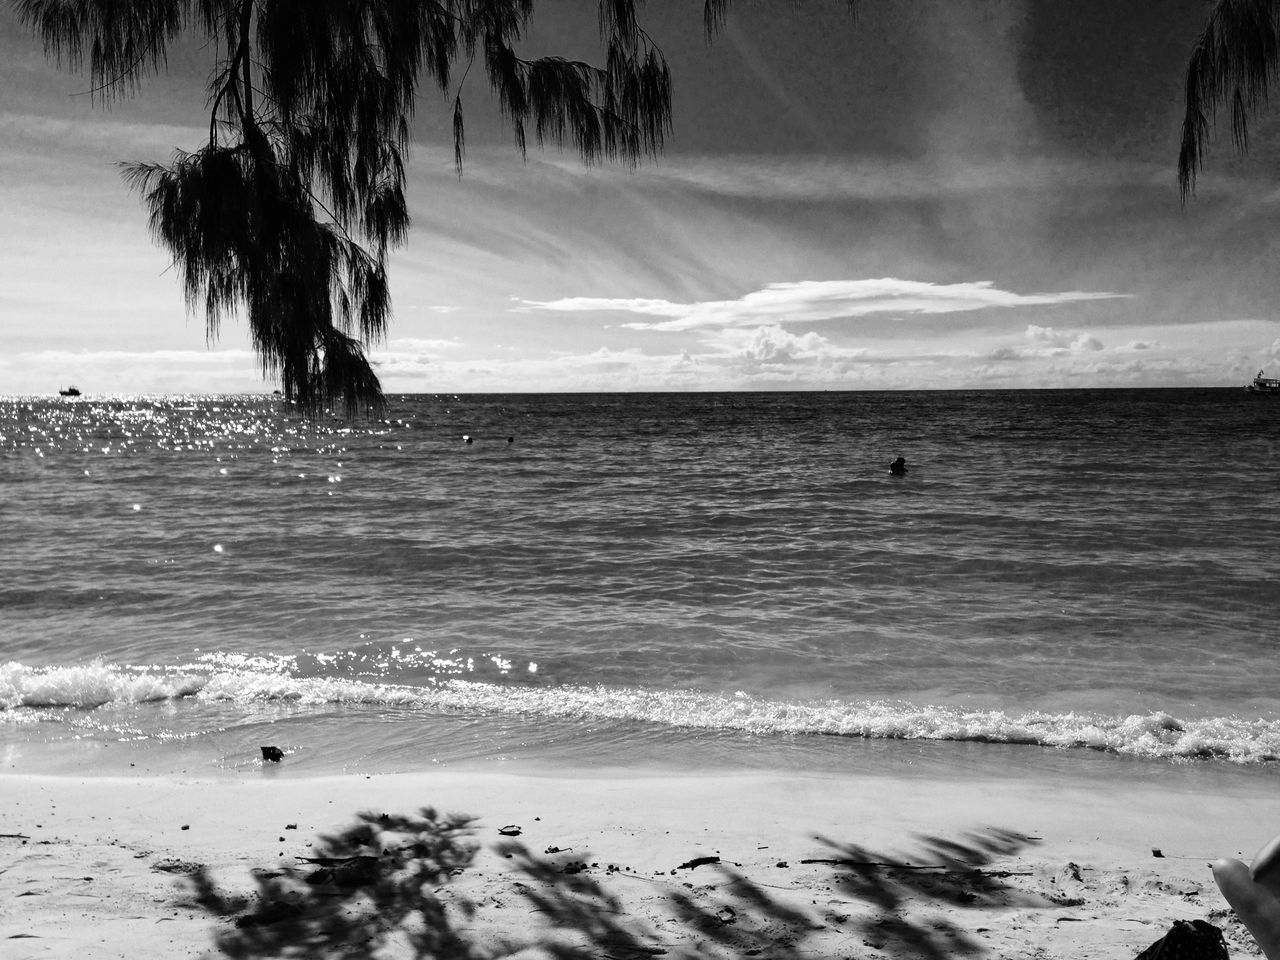 sea, beach, nature, beauty in nature, tree, water, scenics, horizon over water, wave, tranquility, sky, tranquil scene, outdoors, sand, day, no people, palm tree